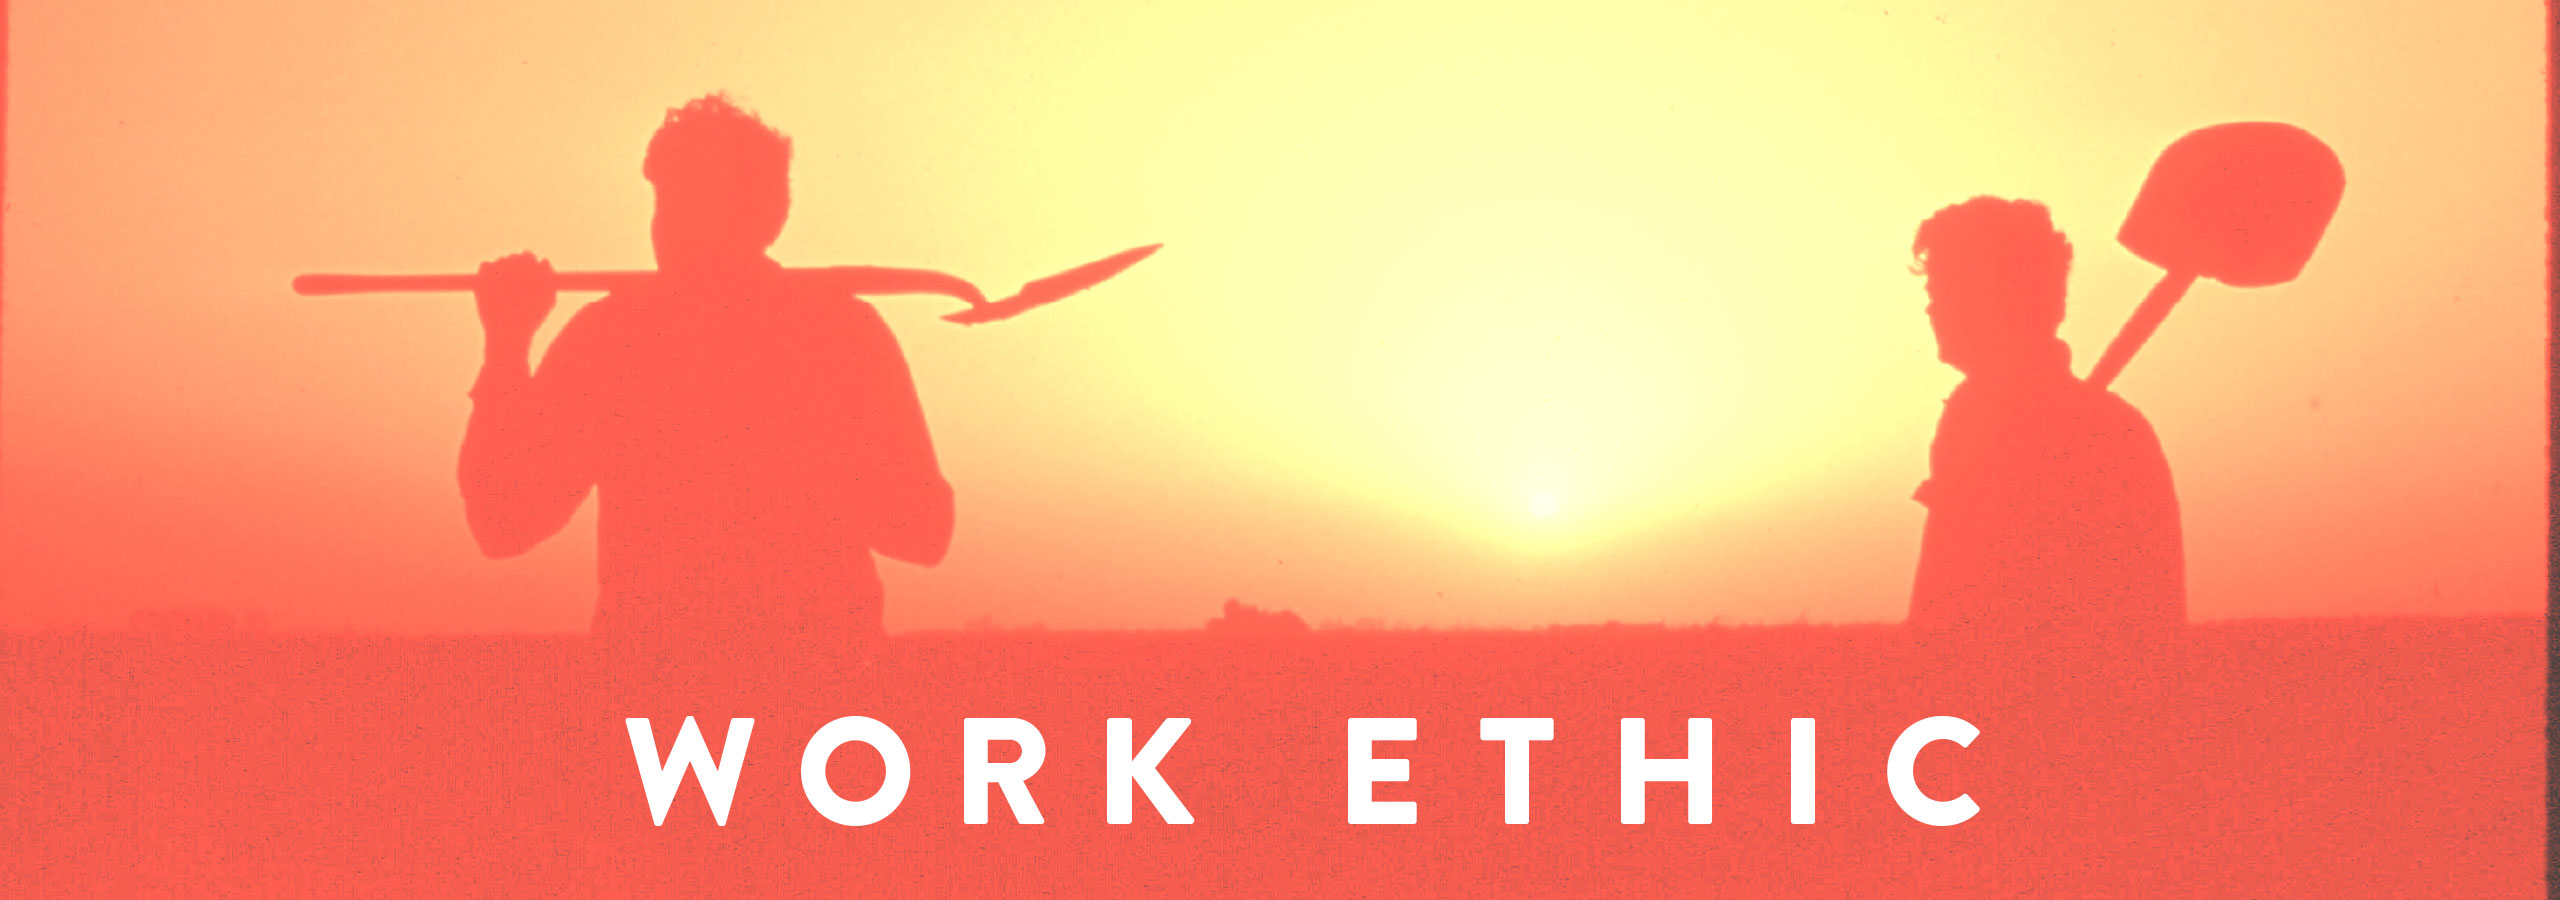 work ethic in high school Workplace ethics quiz compare your responses: 1 34% said personal email is wrong 2 37% said using office equipment for schoolwork is wrong 3 49% said playing computer games at work.